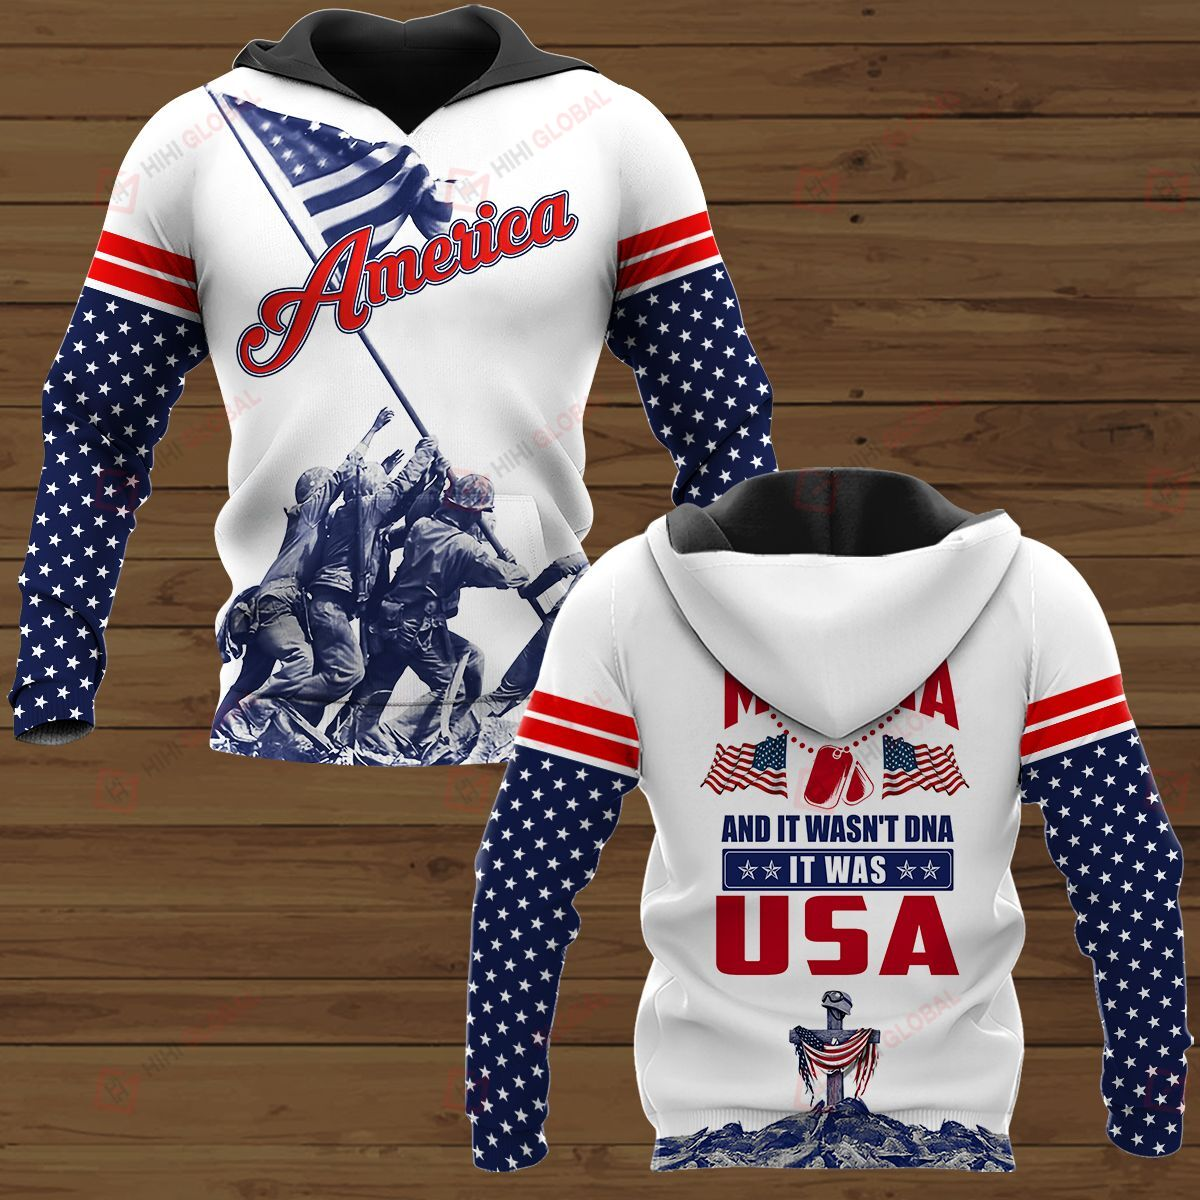 Personalized 3D Shirt They tested my DNA It was USA American Soldier